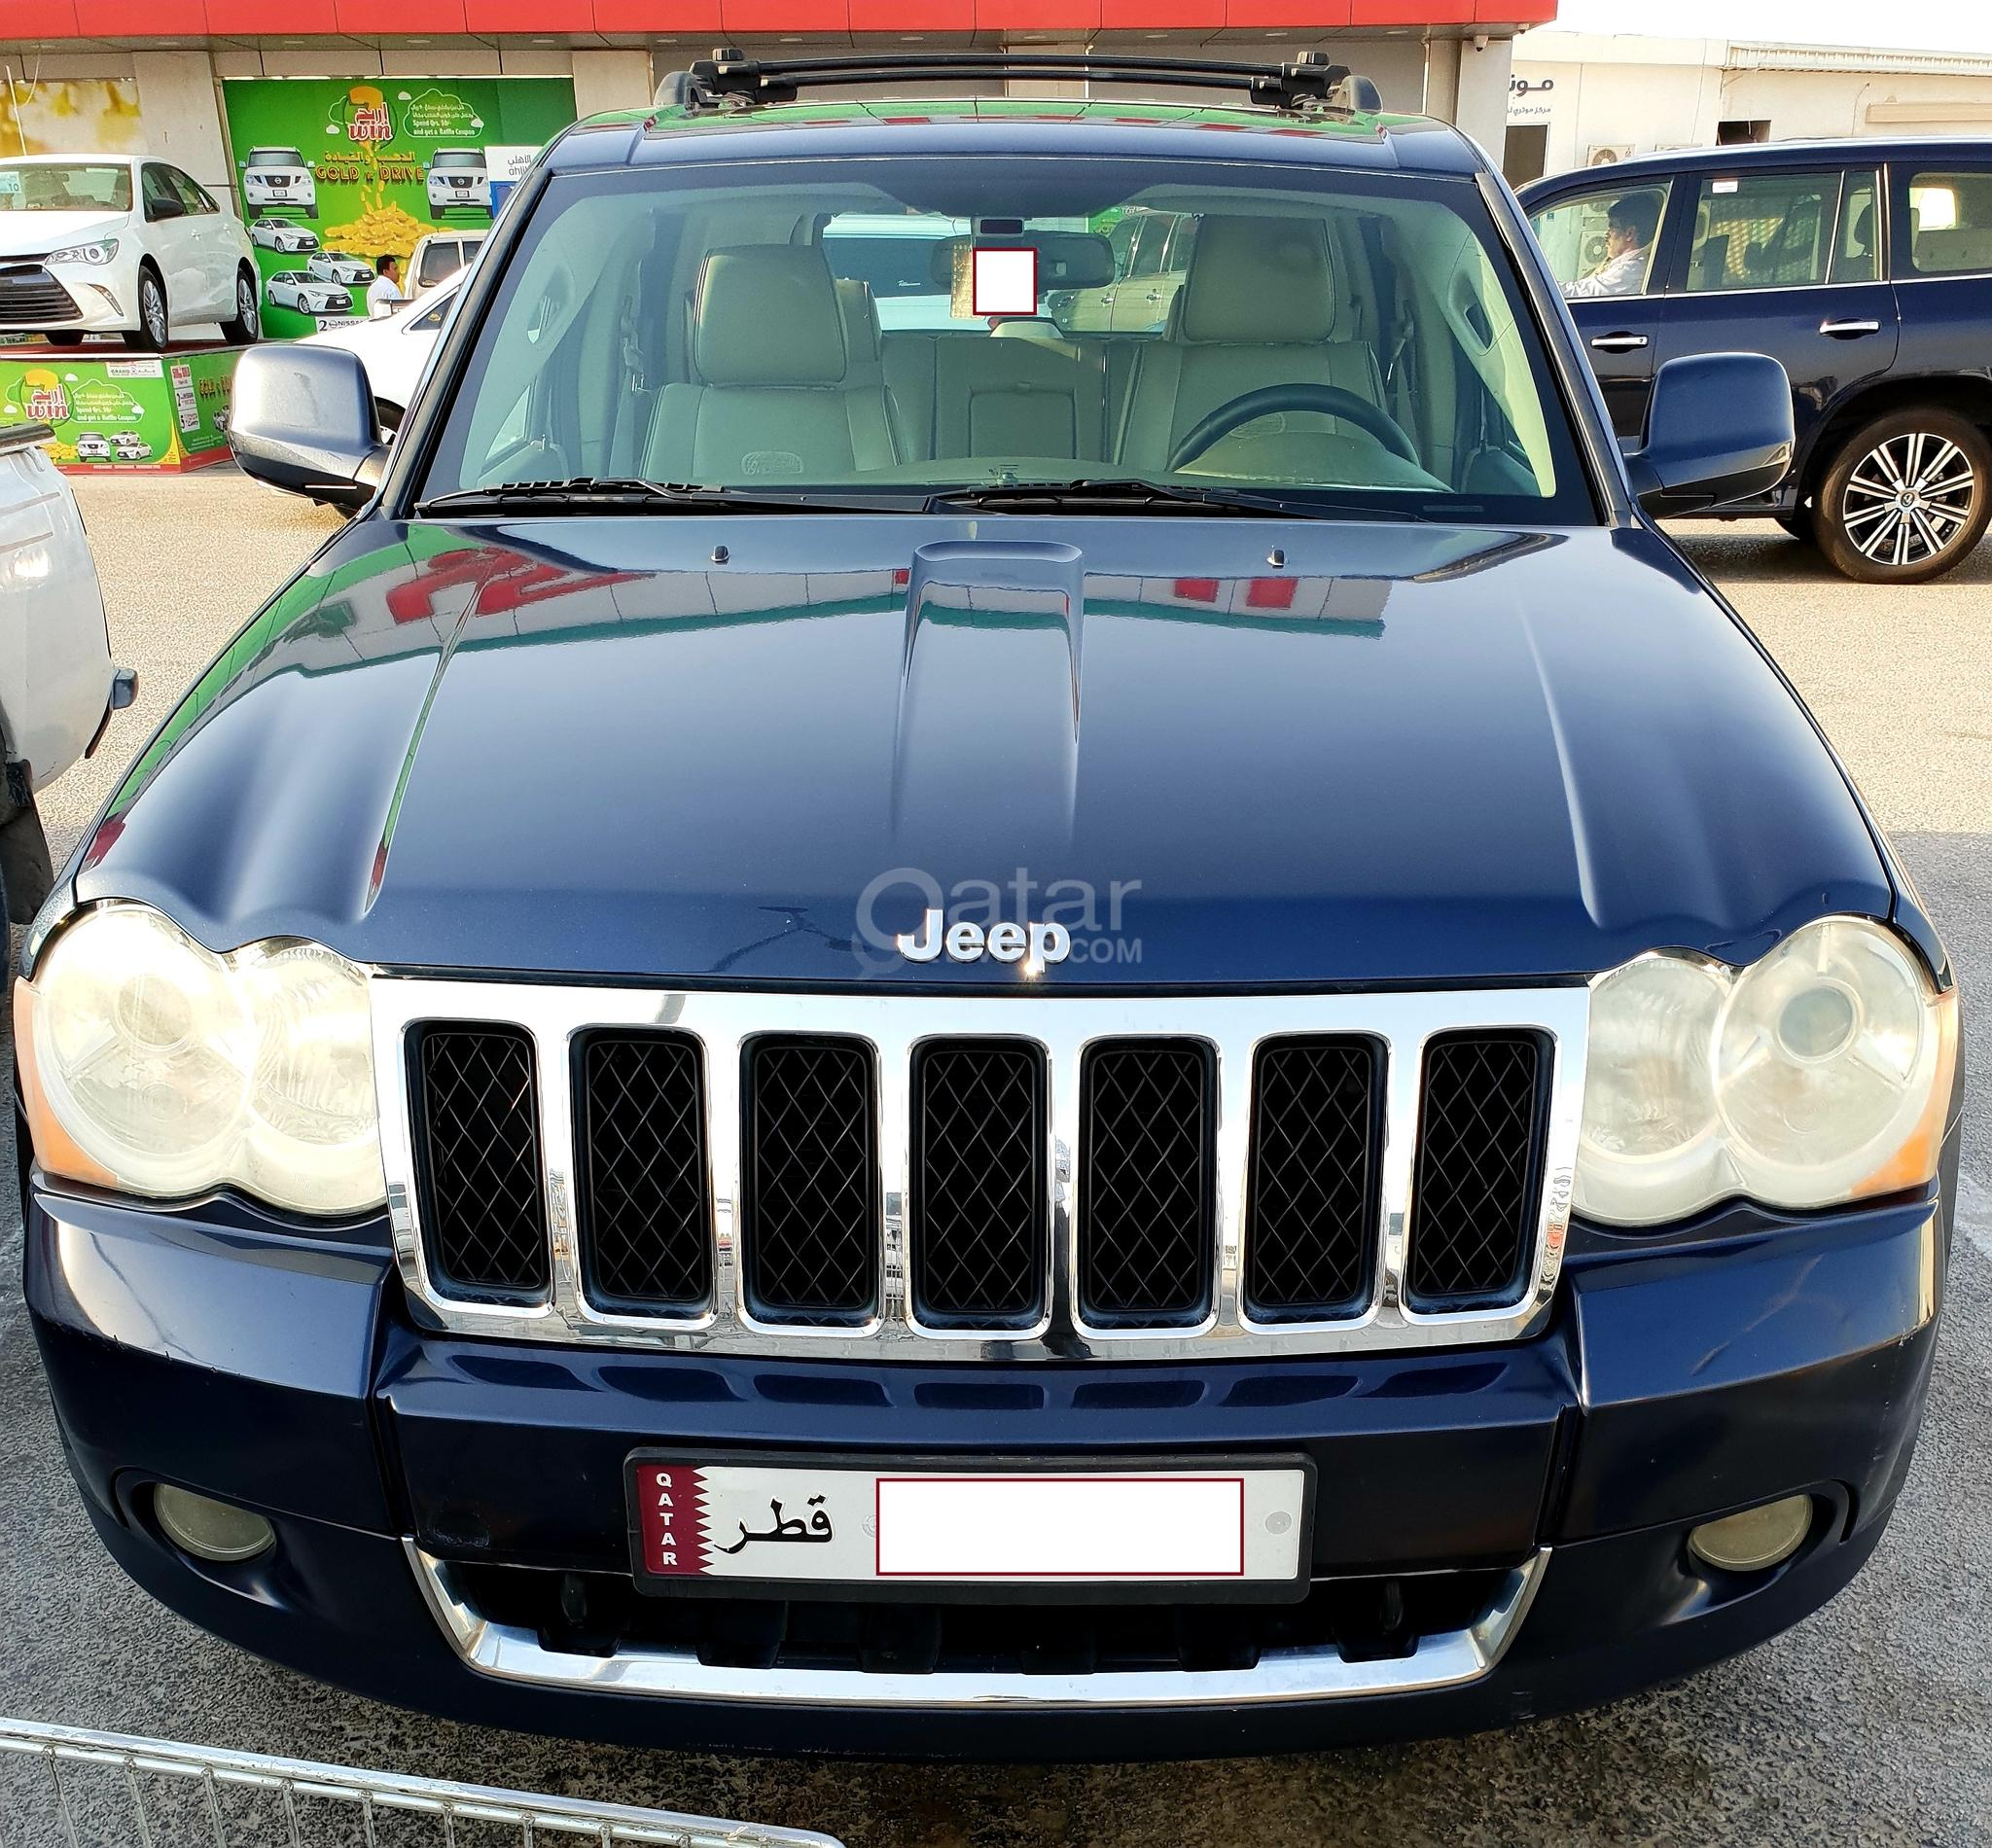 Jeep Grand Cherokee 2009 Overland Dark Blue Color In A Good Condition Qatar Living